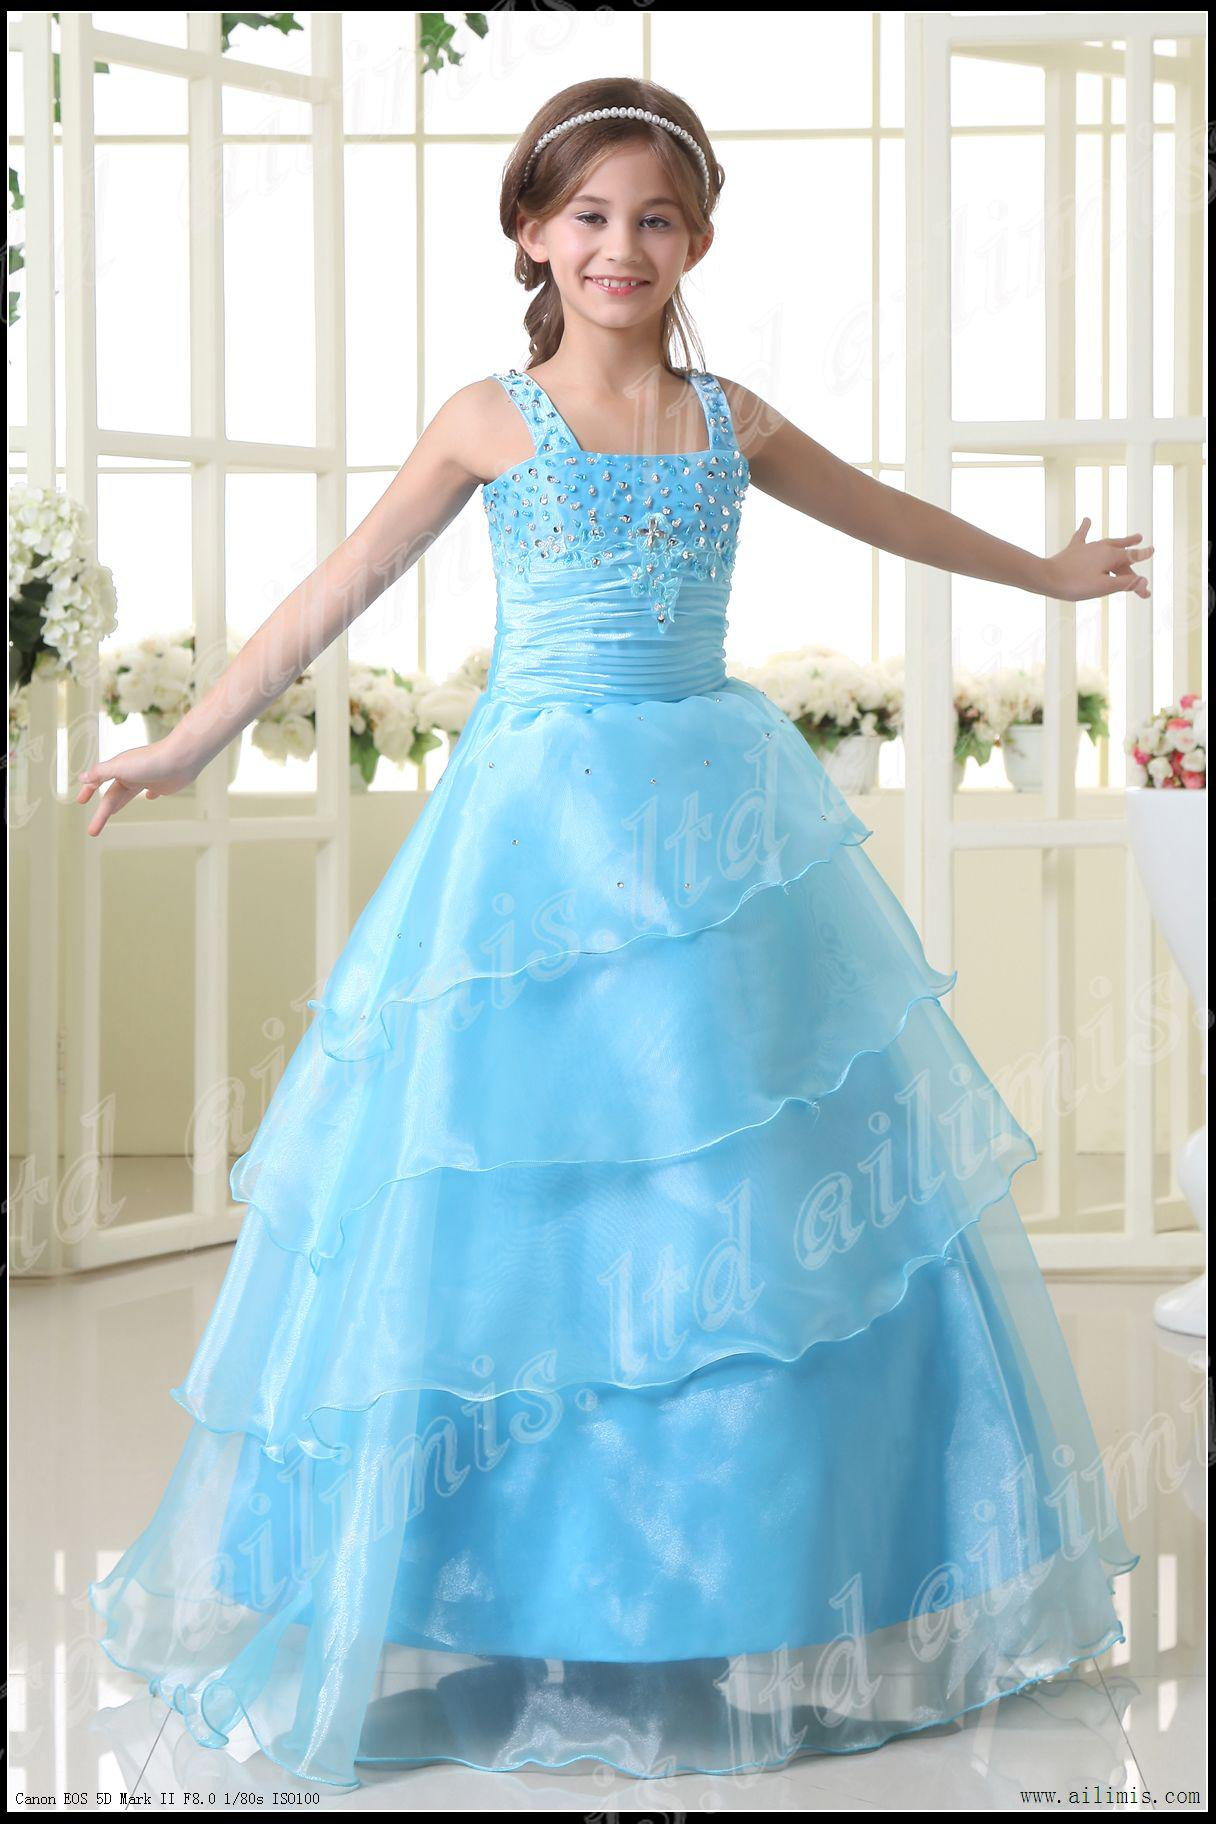 Famous Young Childrens Bridesmaid Dresses Picture Collection - All ...